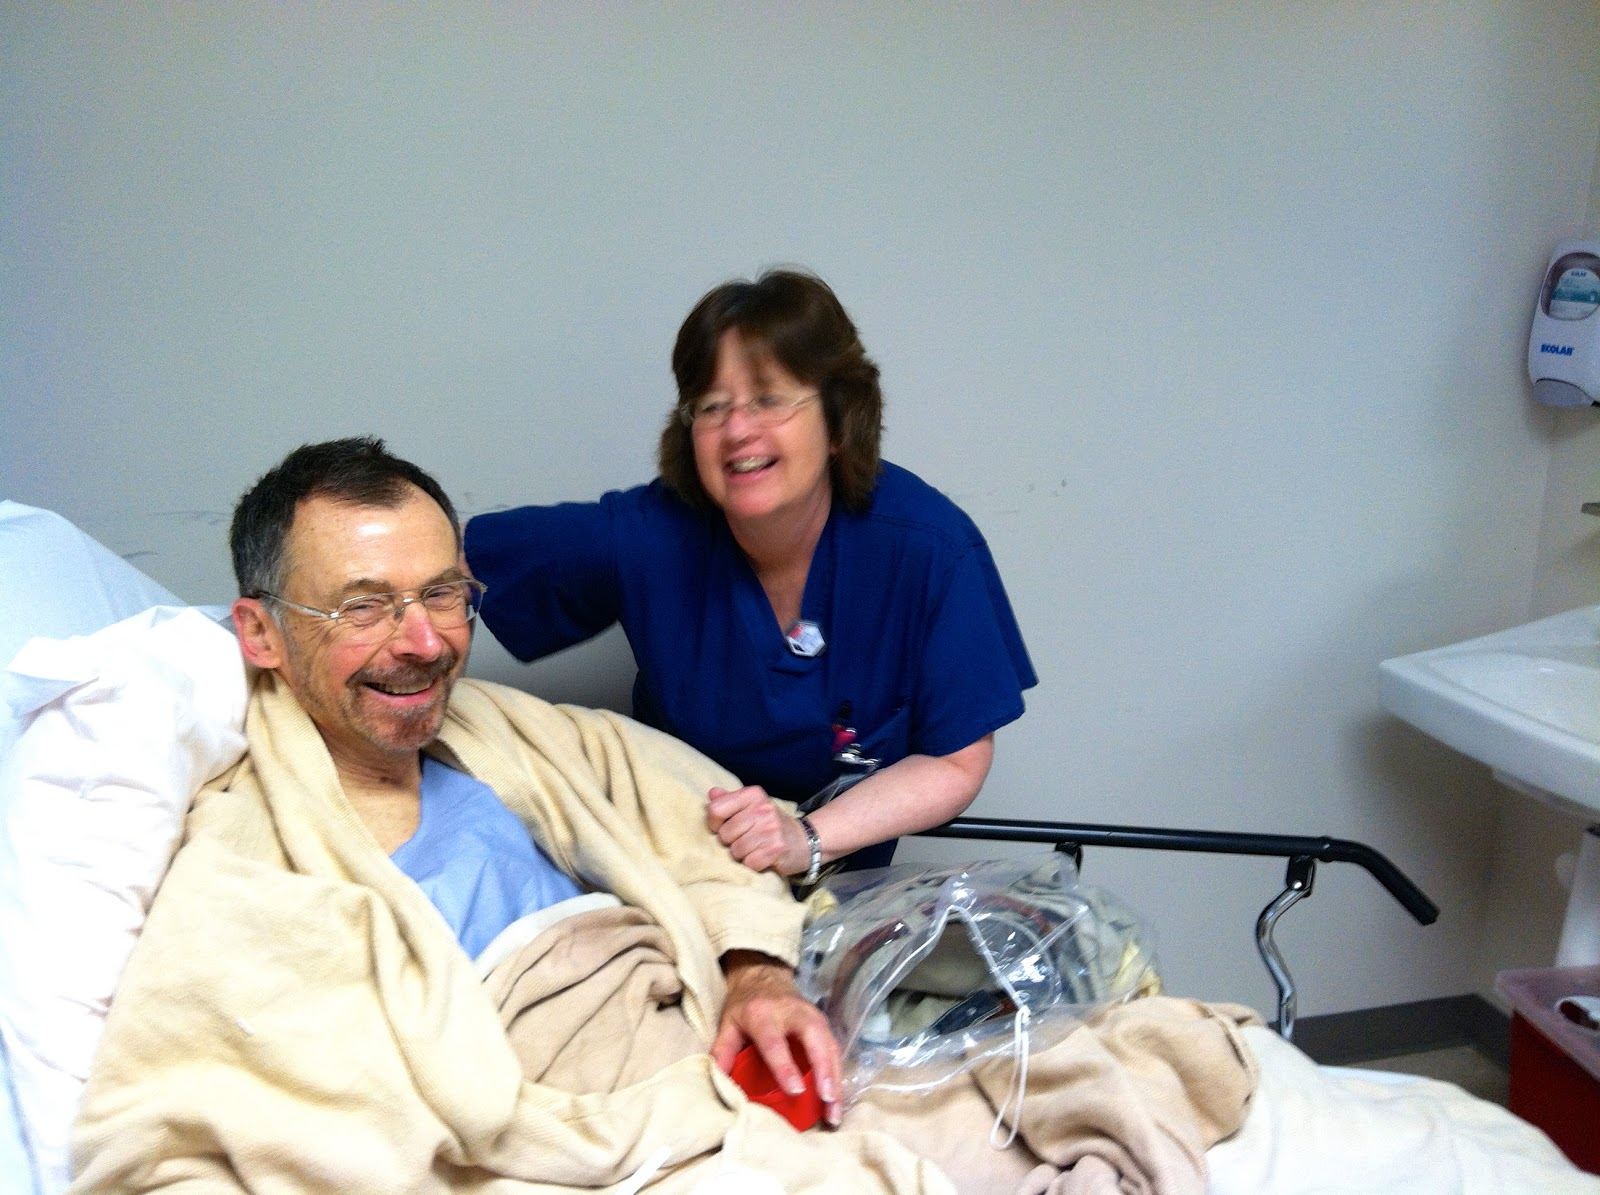 Retired in Delaware: Post Recovery - Prostate Surgery Day Five